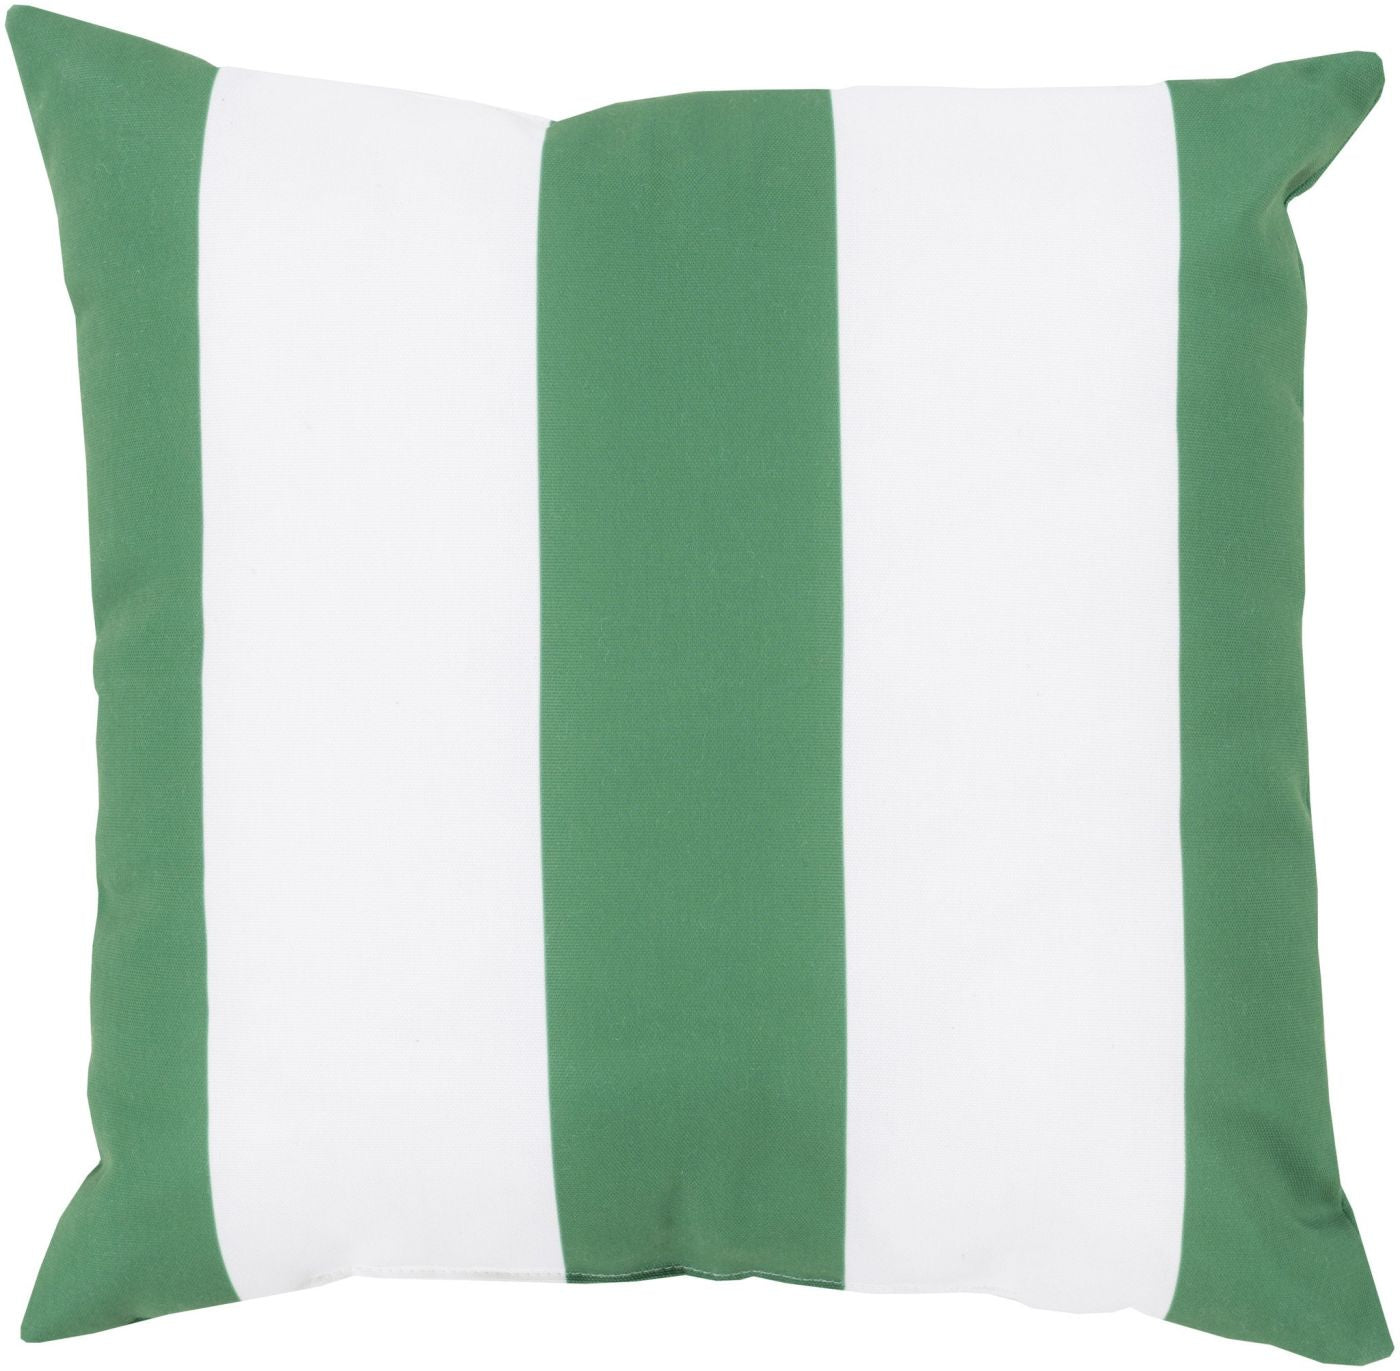 Surya Rain Throw Pillow Green, Neutral RG156-2020. Only $48.00 at Contemporary Furniture Warehouse.